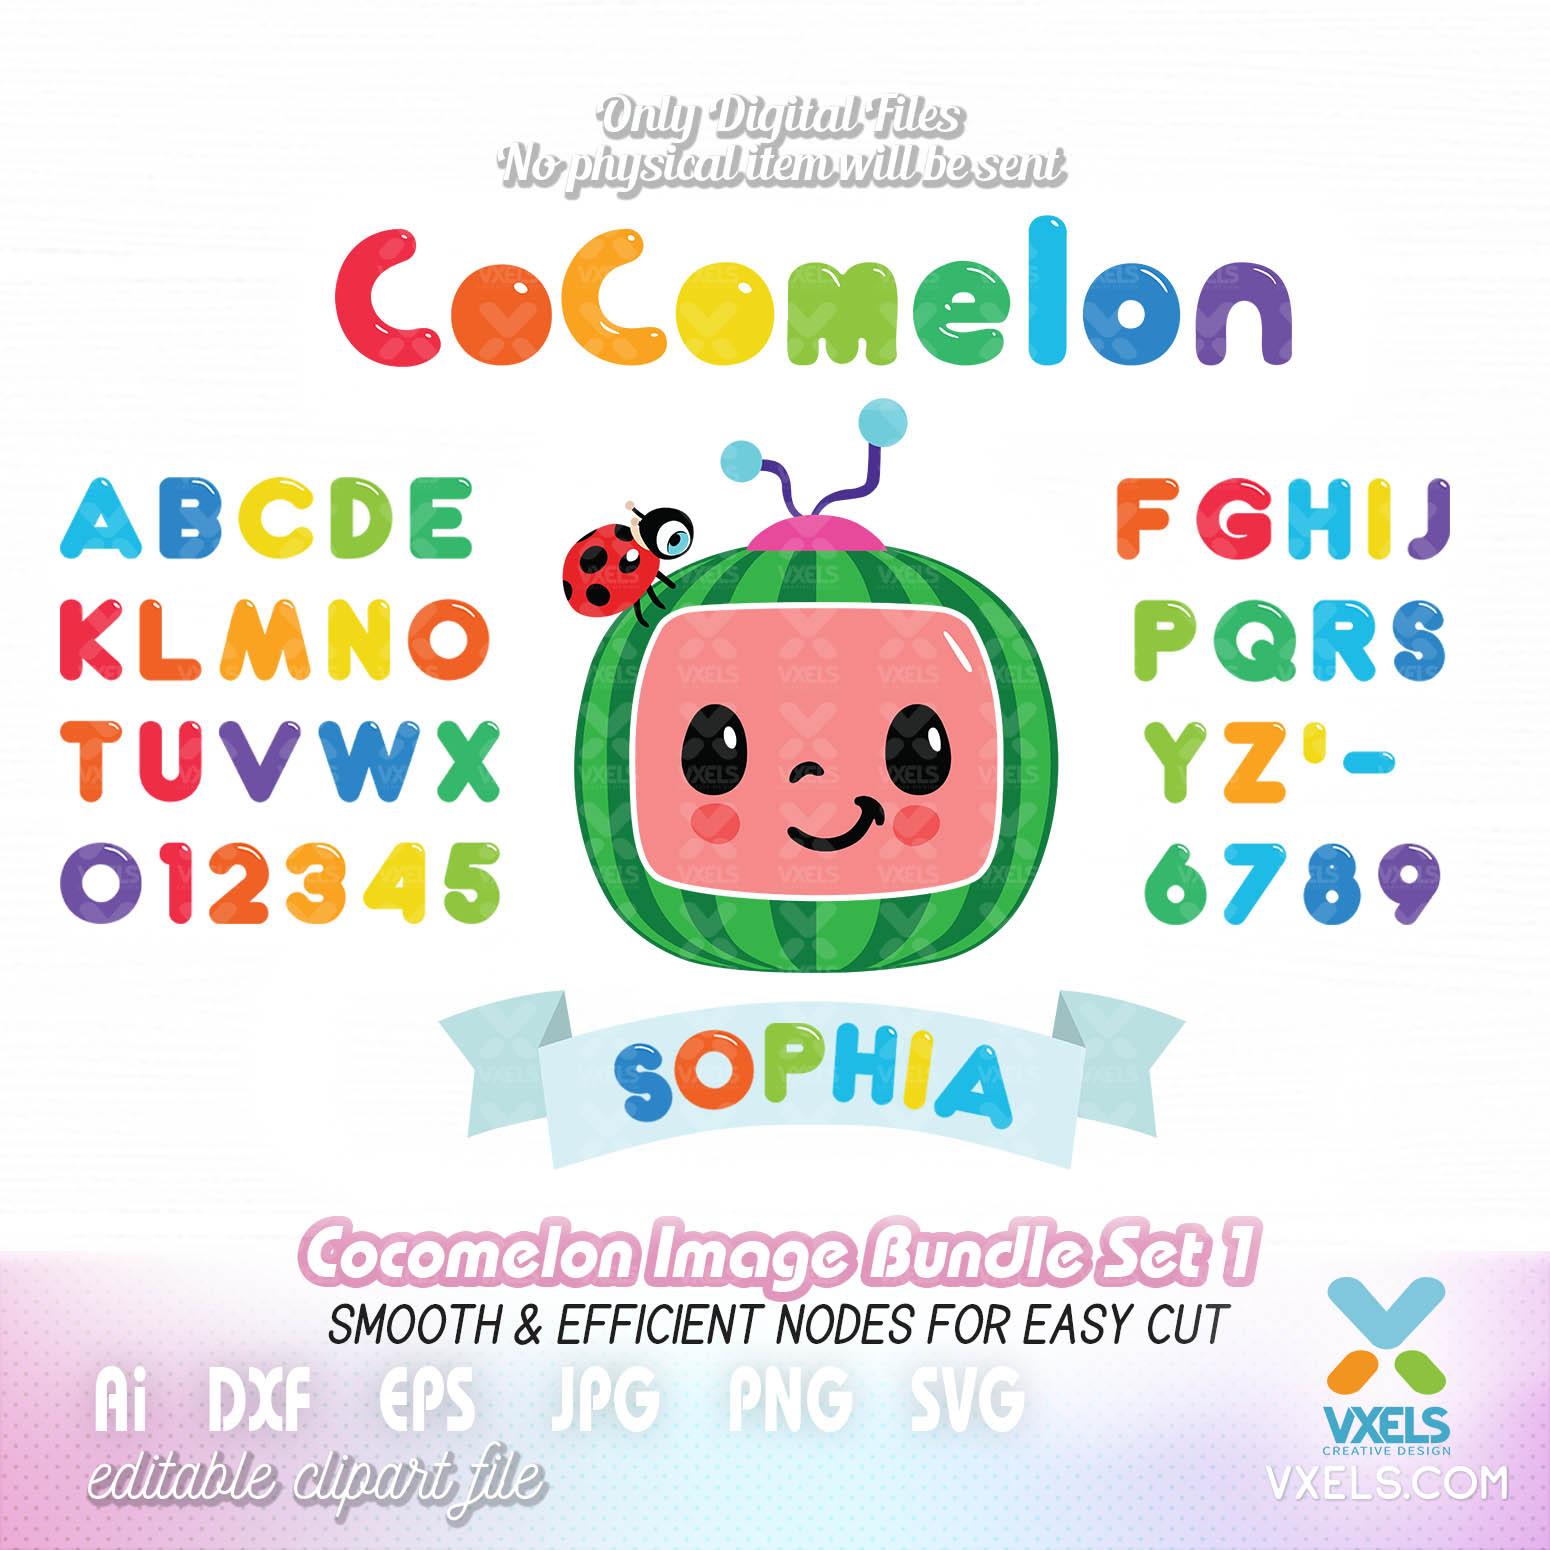 Cocomelon Svg Logo And Banner Name Printable Birthday Alphabet Font Please use search to find more variants of pictures and to choose between available options. cocomelon svg logo and banner name